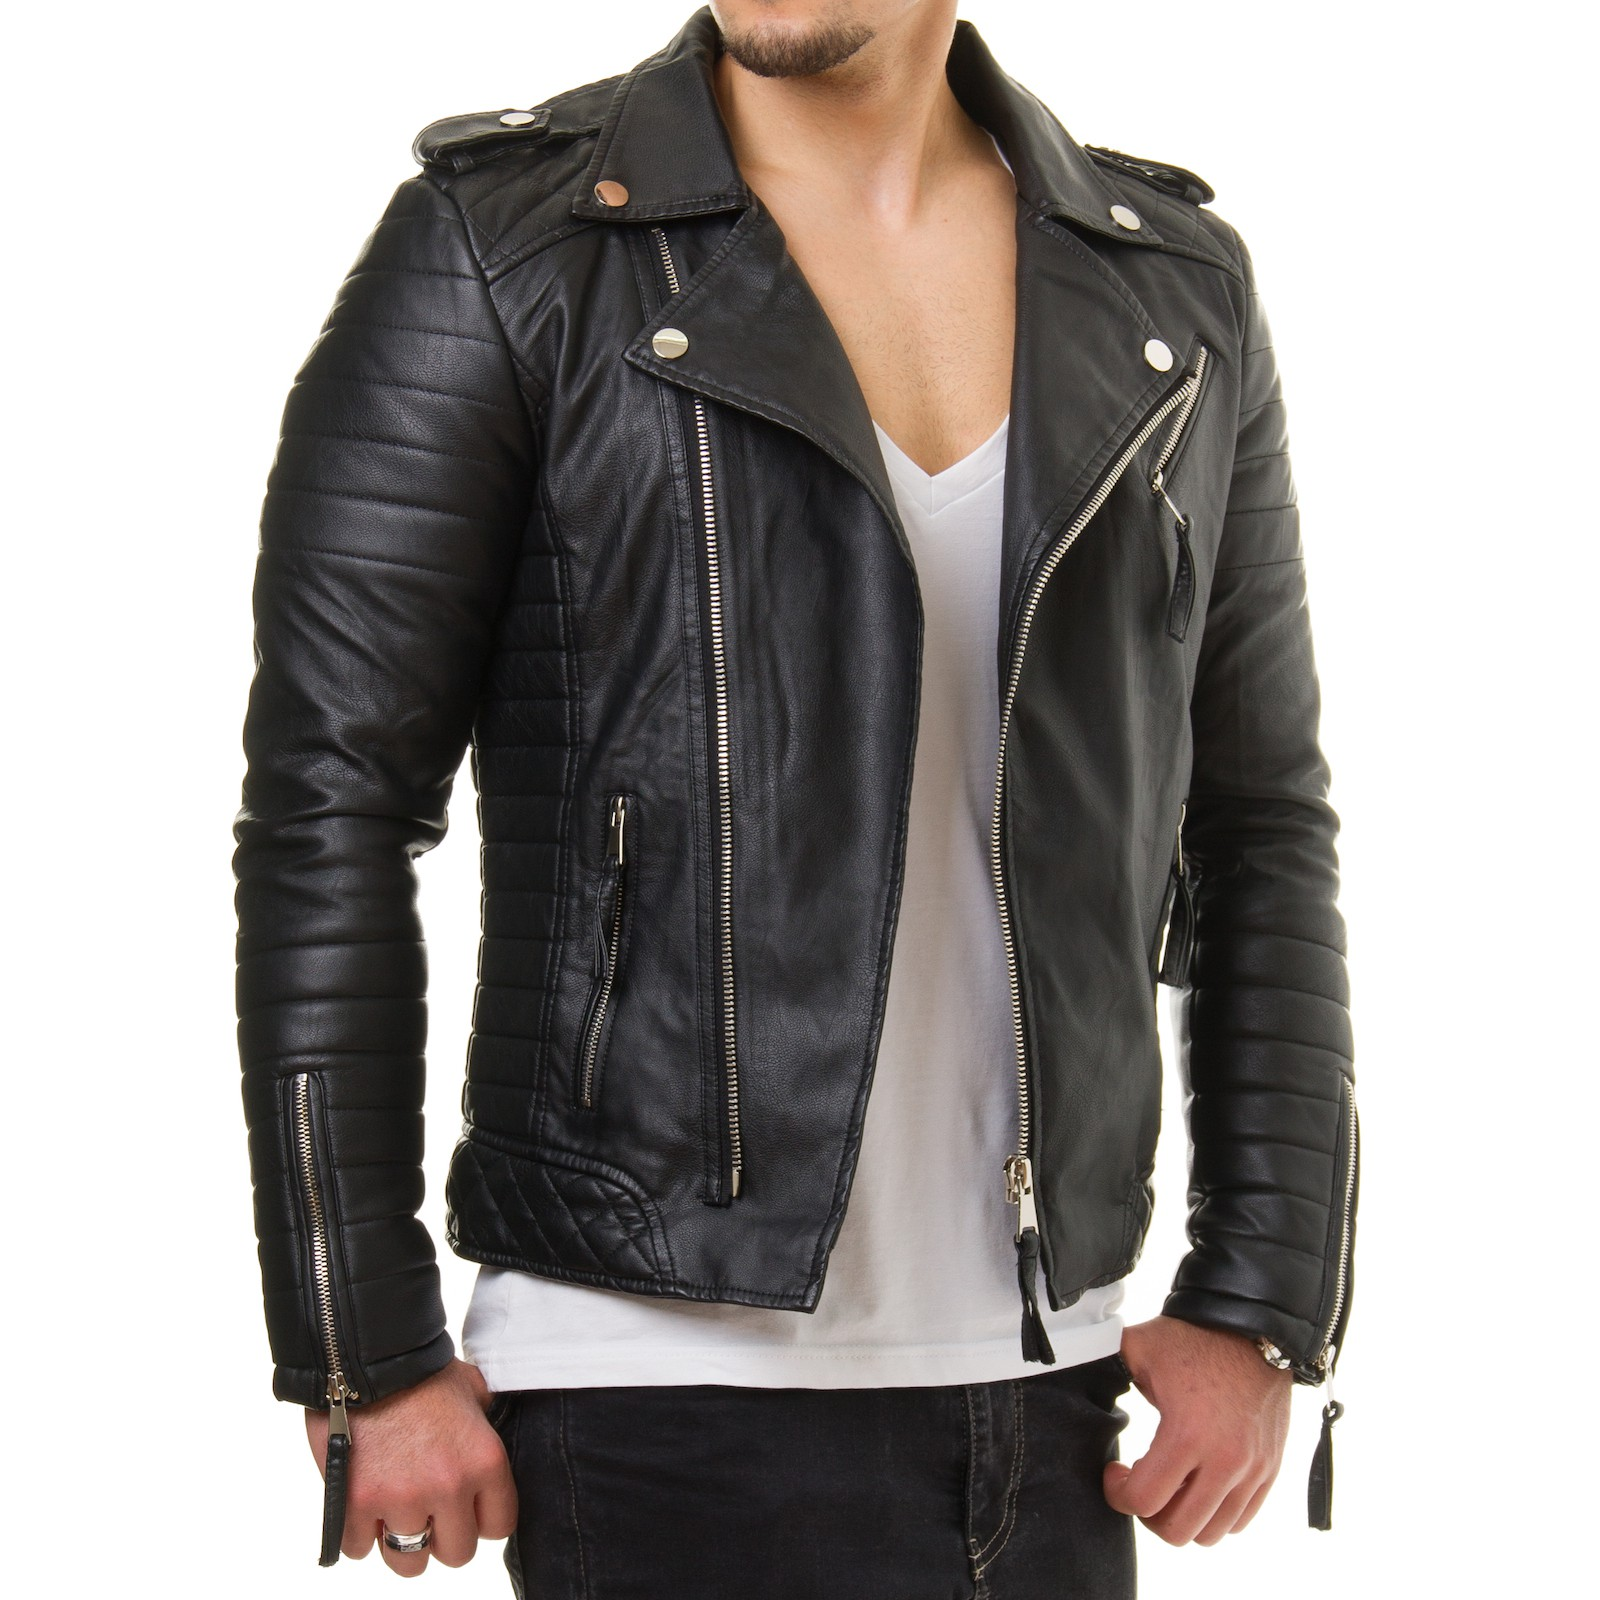 prestige homme mr18 herren kunst lederjacke biker jacke. Black Bedroom Furniture Sets. Home Design Ideas